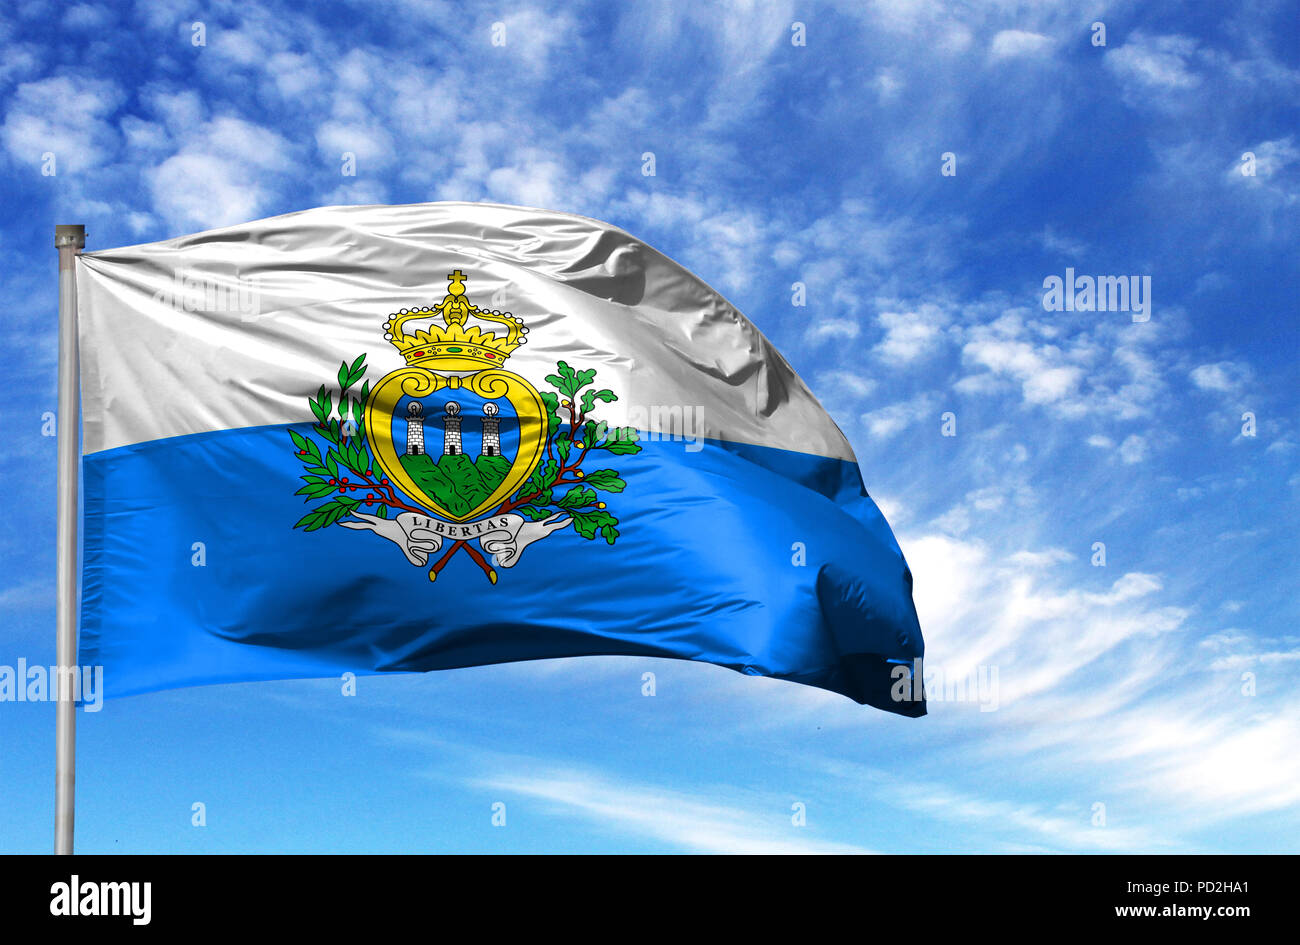 National flag of San marino on a flagpole in front of blue sky. - Stock Image